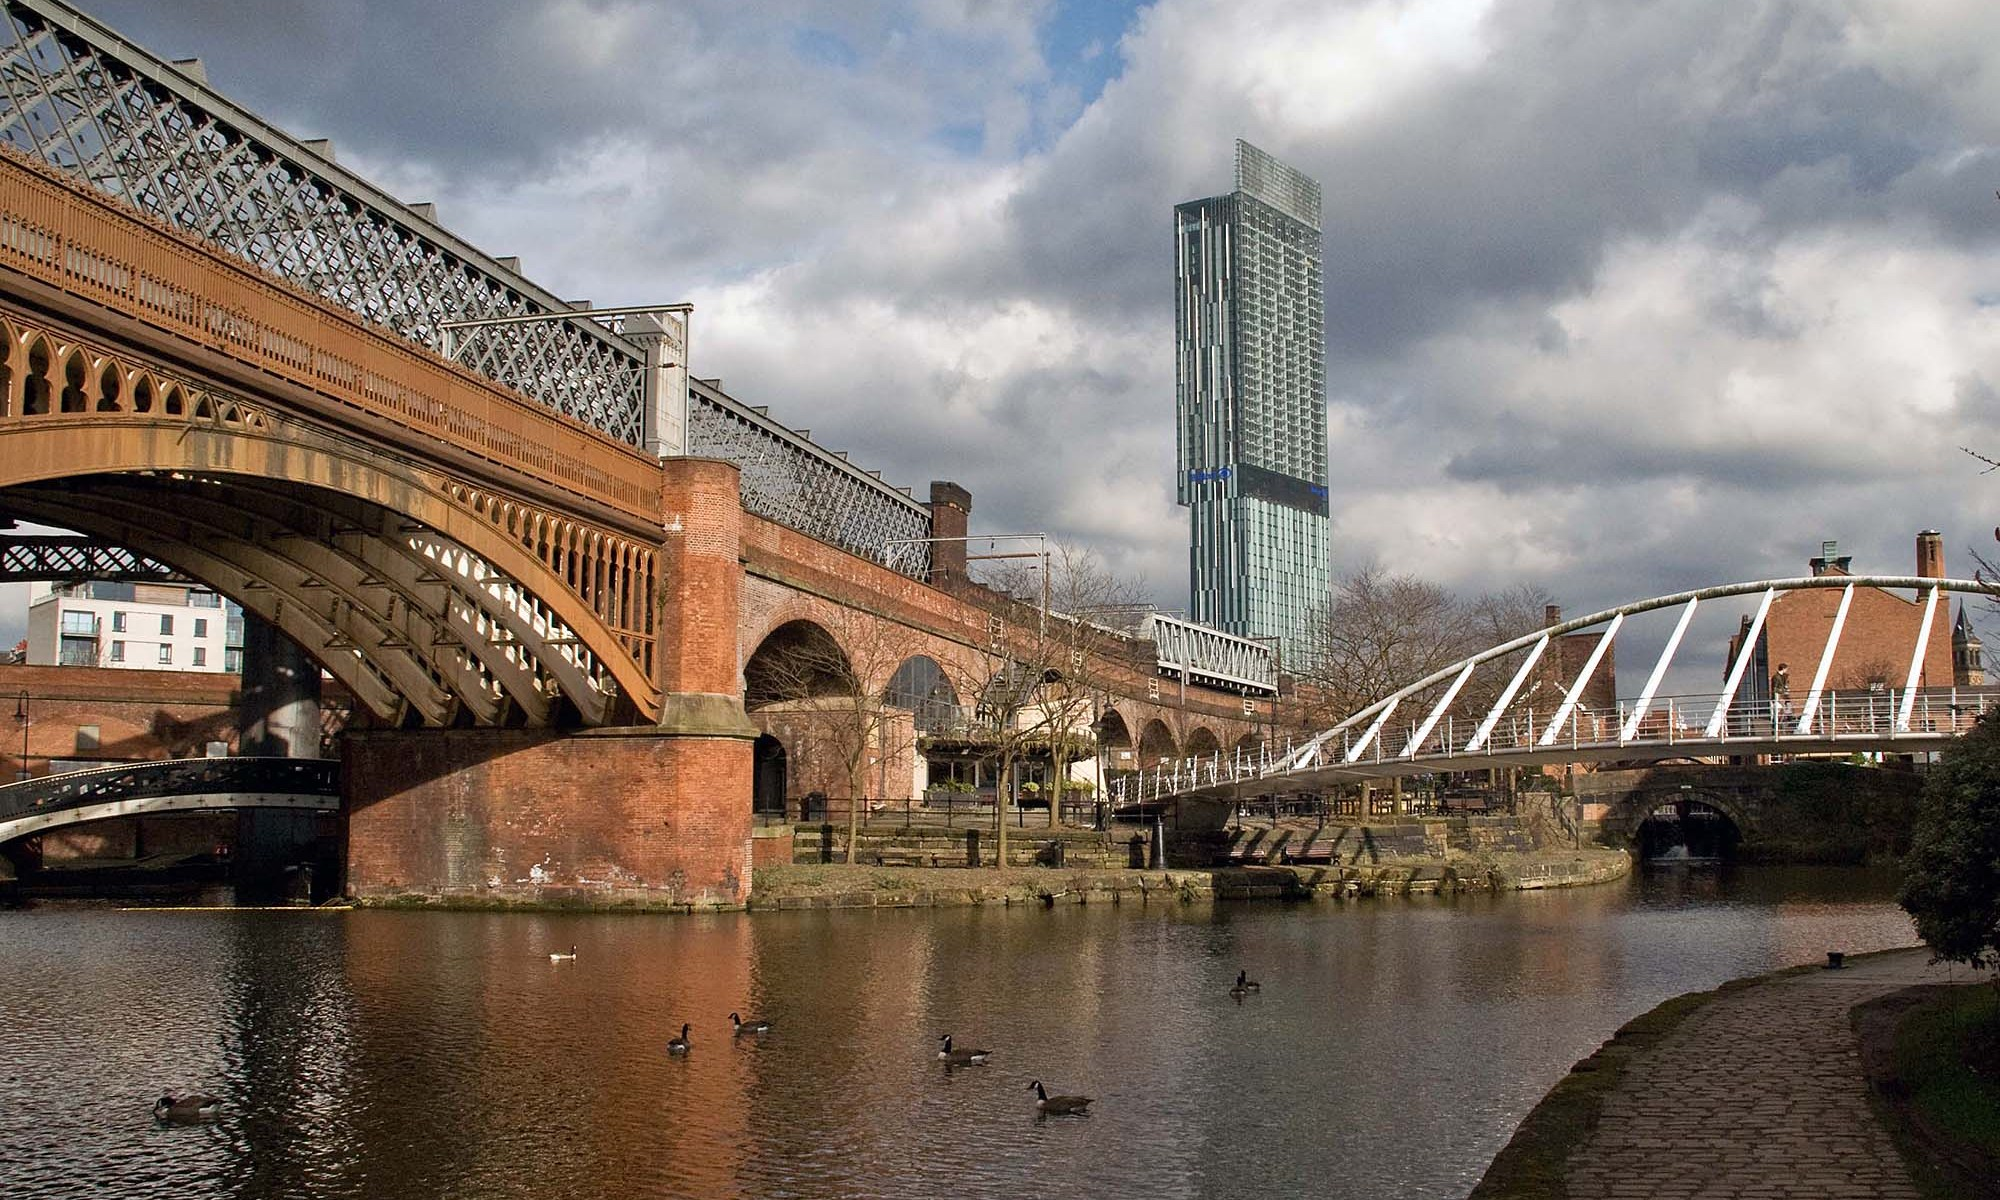 Castlefield Bridges and Beetham Tower, Manchester